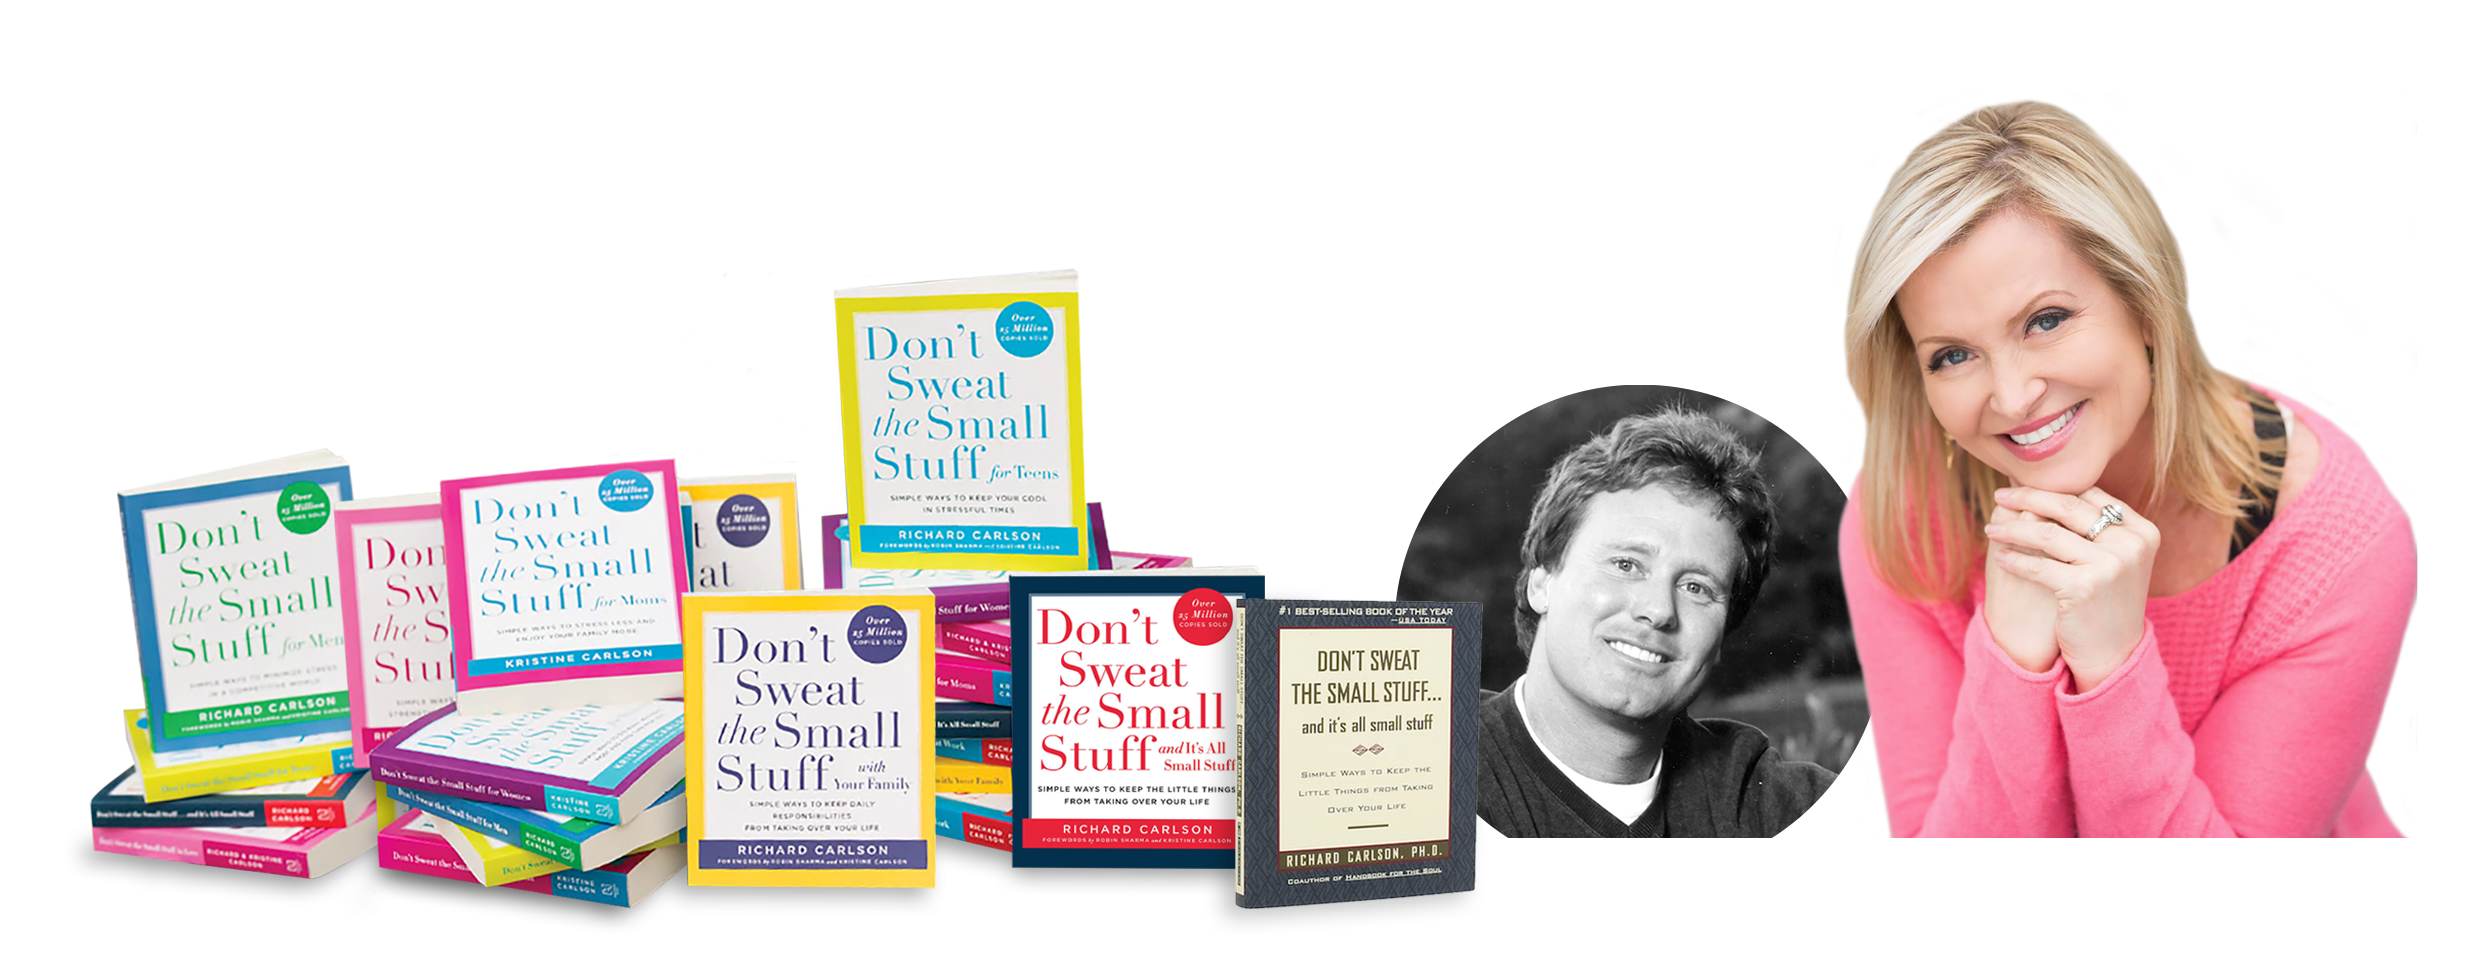 Don't Sweat the Small Stuff Books